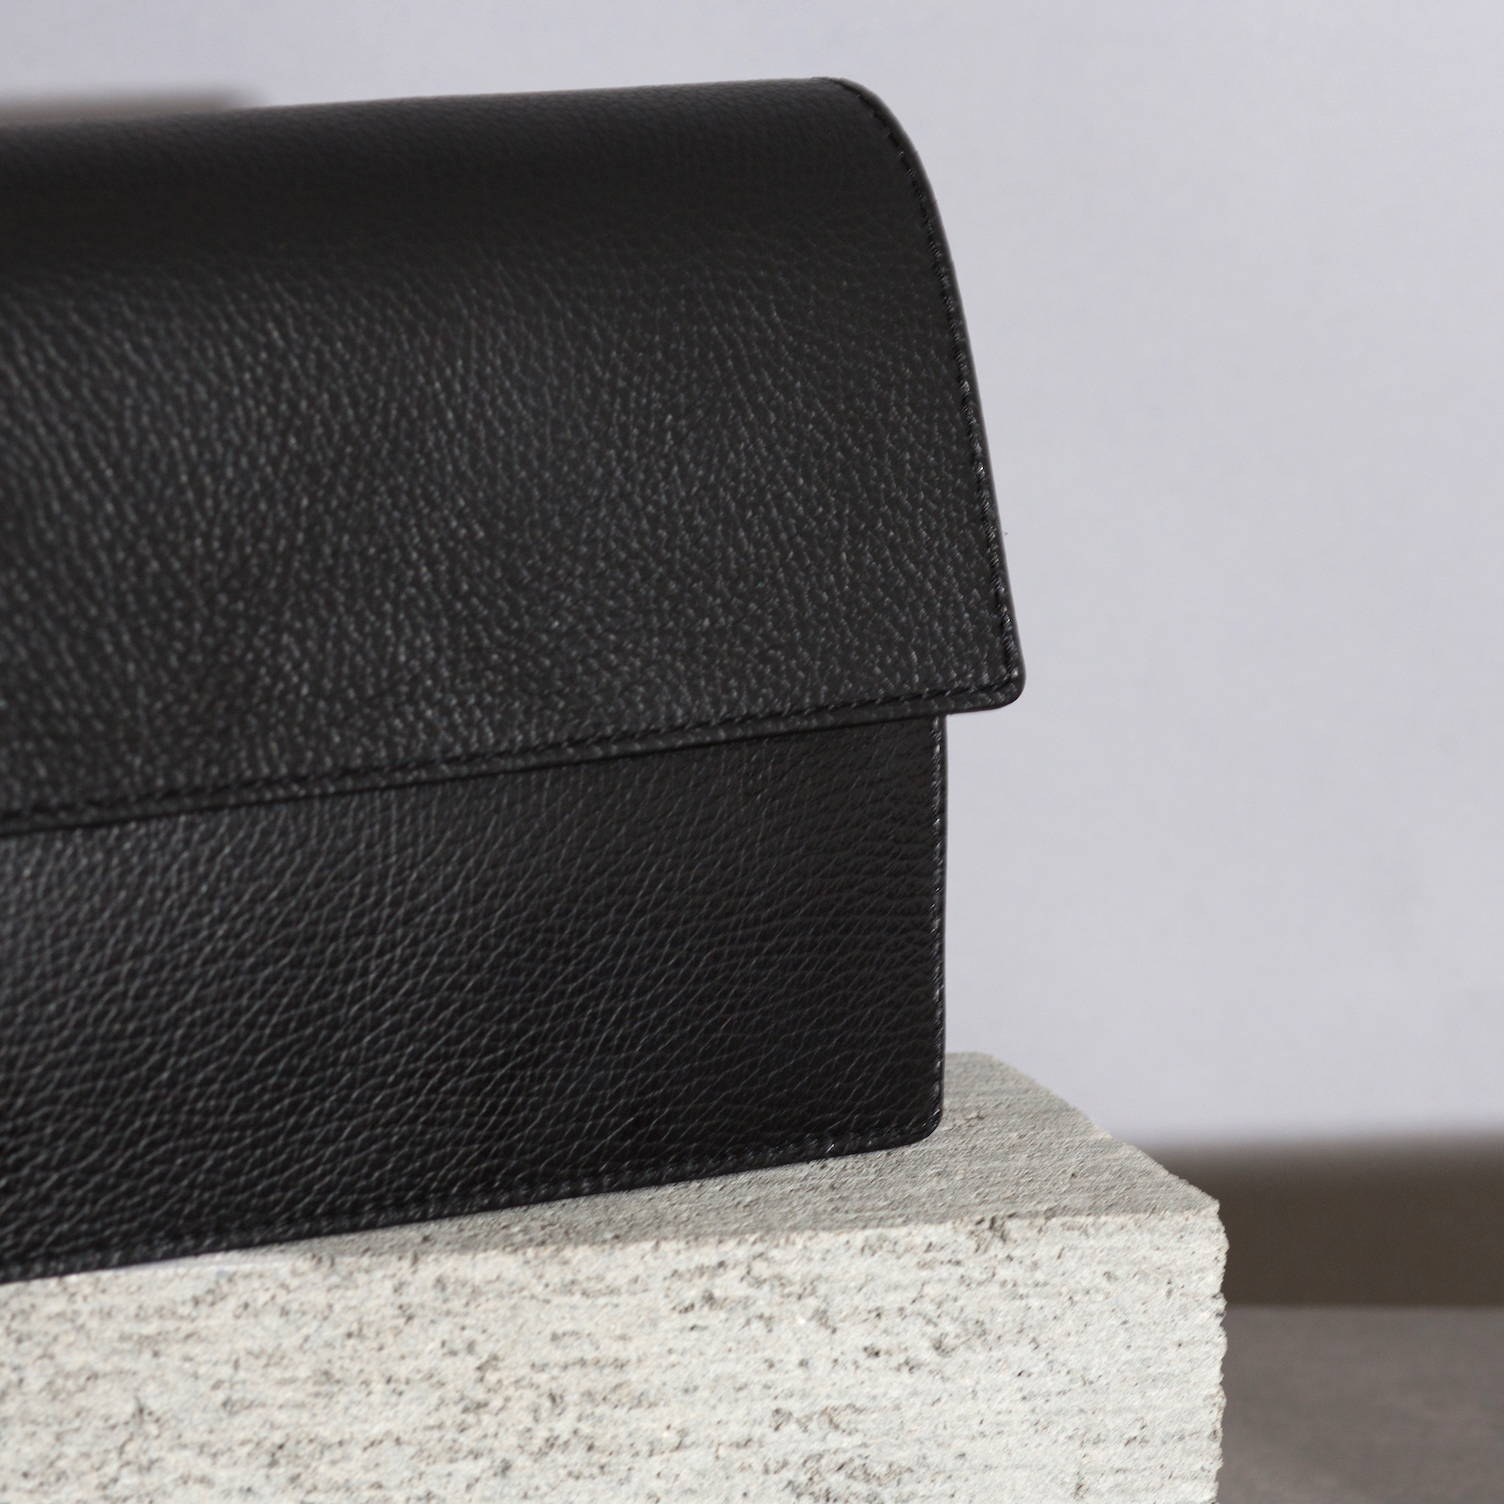 VESTIRSI CARTLY Leather crossbody clutch purse bag handmade in Italy from textured soft pebbled Italian black leather